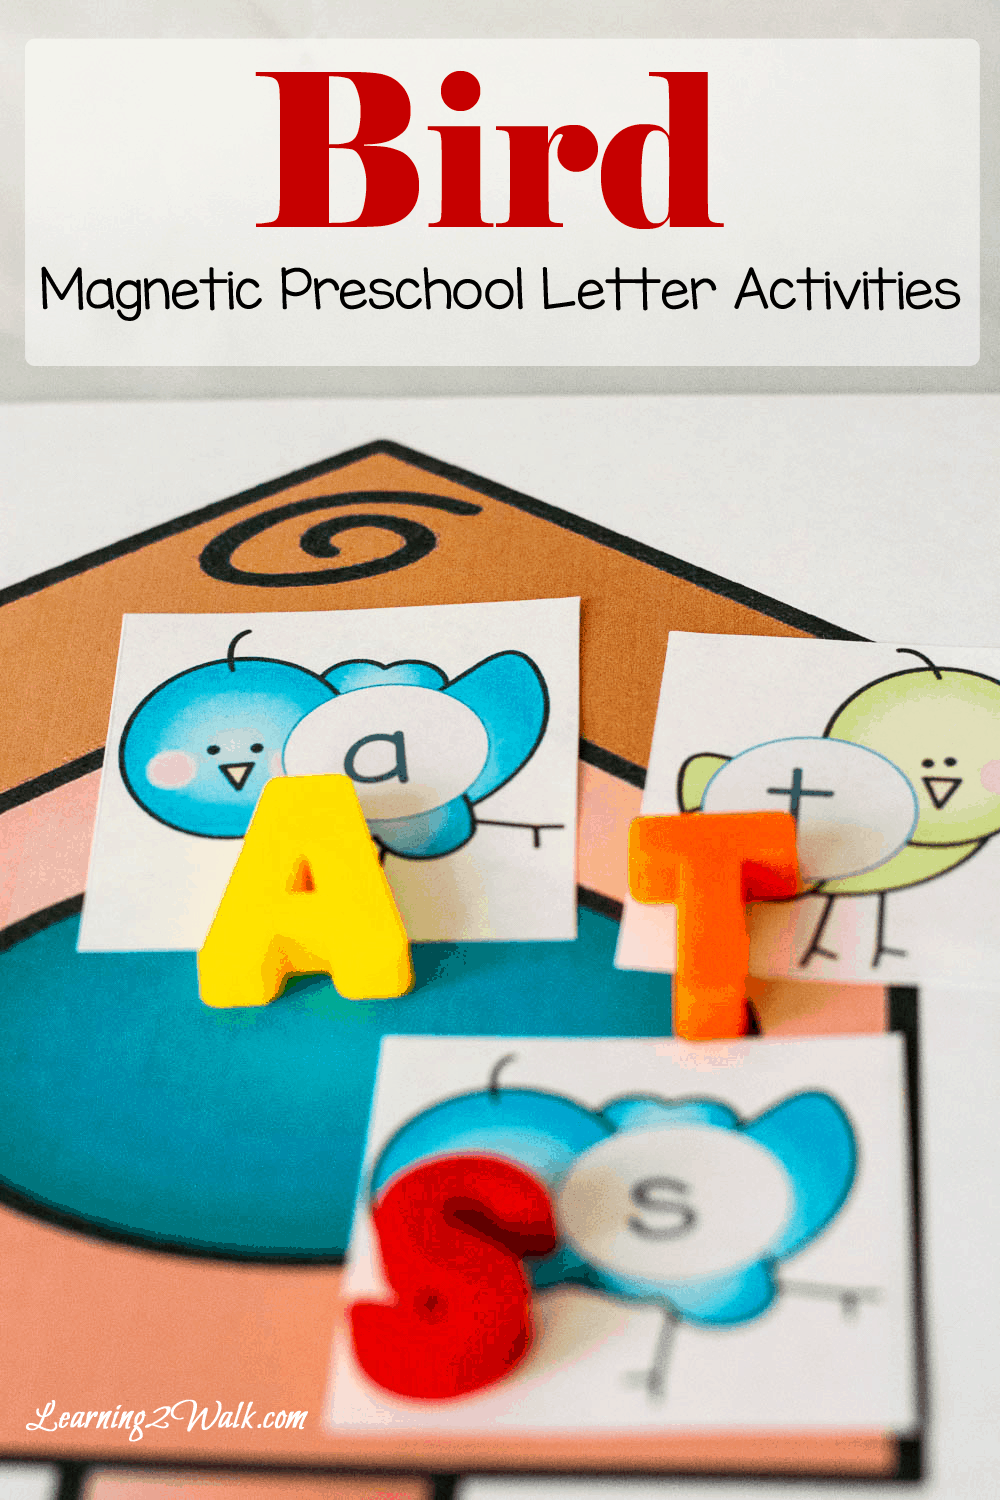 Bird Preschool Letter Activities